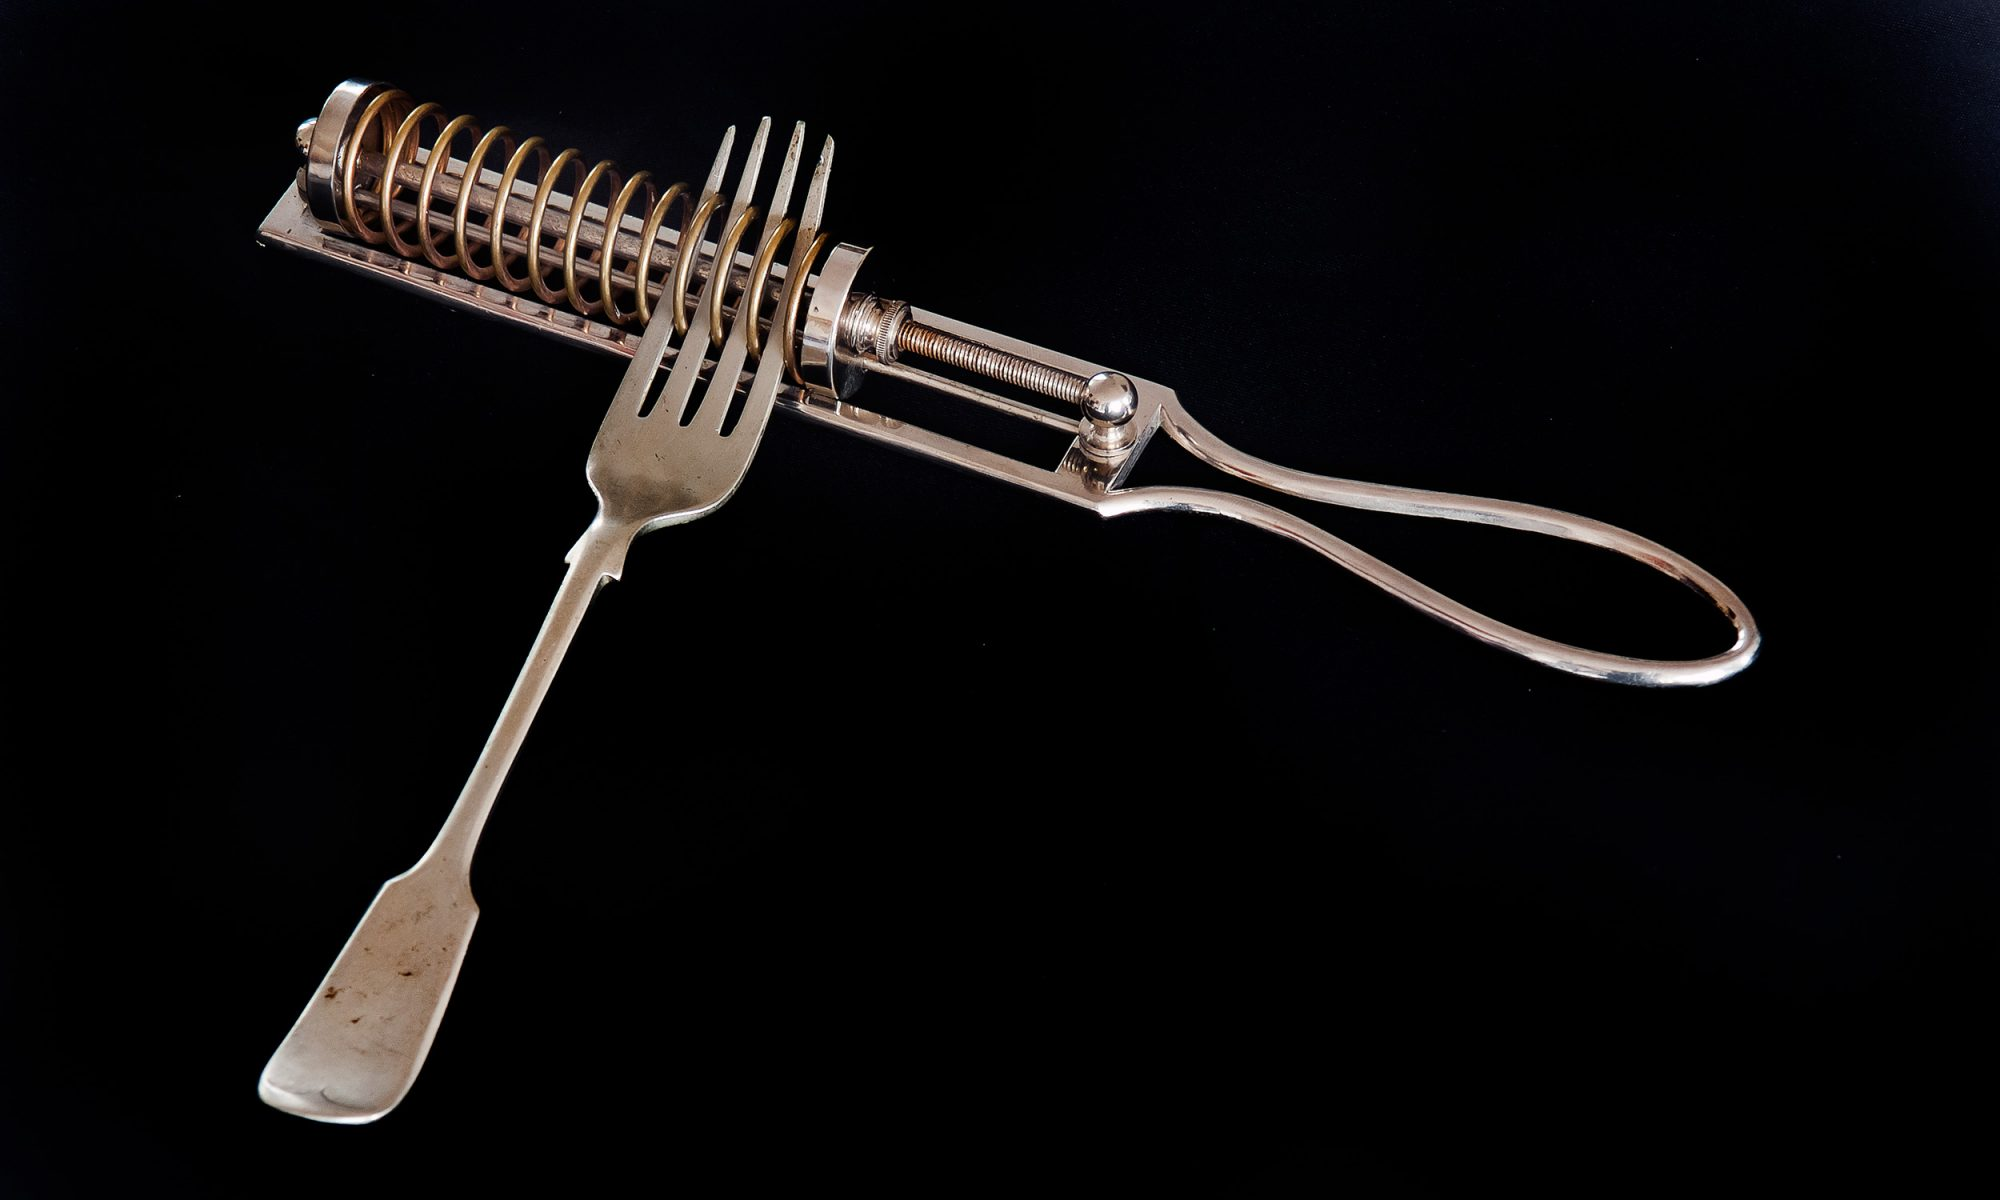 EC: These Old Kitchen Gadgets Look Strange but People Actually Used Them